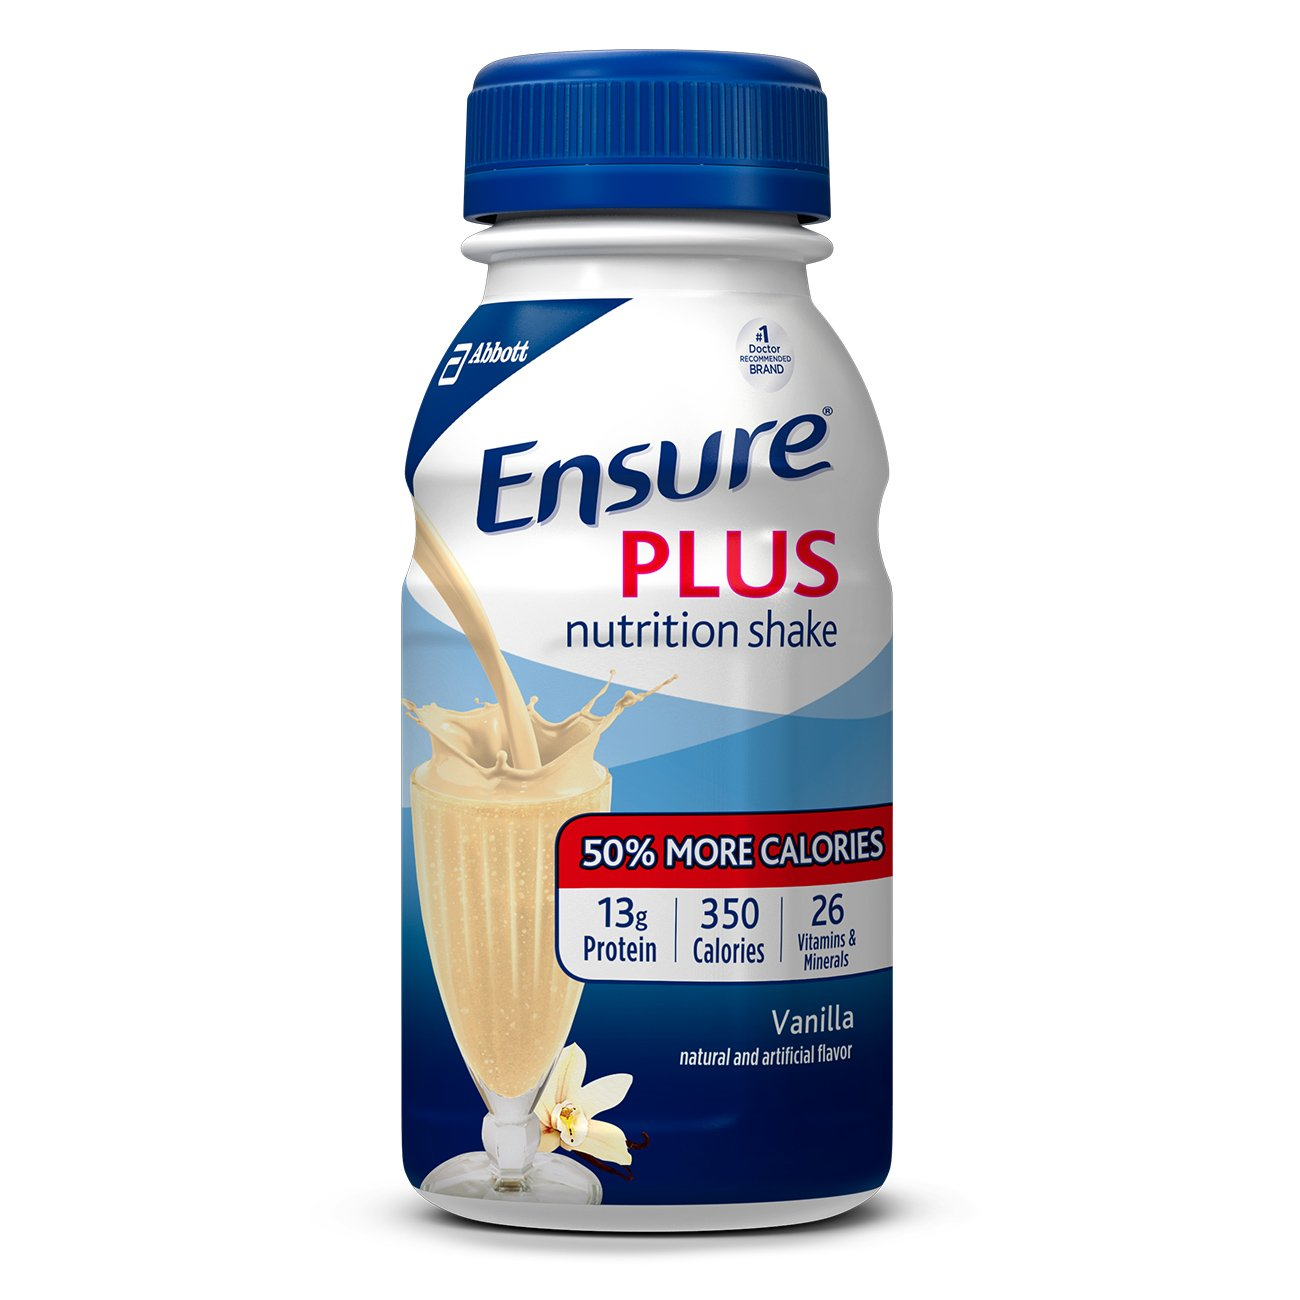 Ensure Plus Nutrition Shake, Vanilla, 8-Ounce, 16 Count(Packaging may slightly vary)